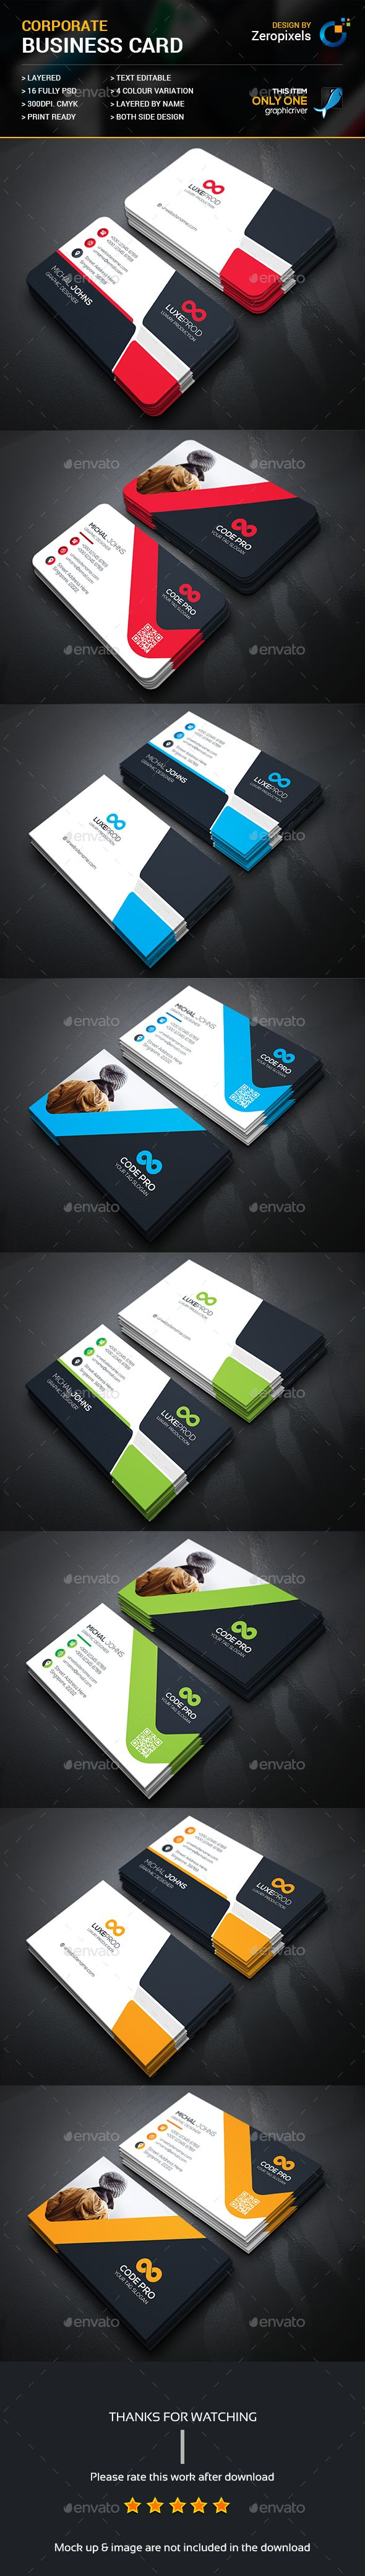 Business Card Bundle Templates Psd Download Here Https Graphicriver Net Item Busin Printing Business Cards Business Card Maker Free Business Card Templates